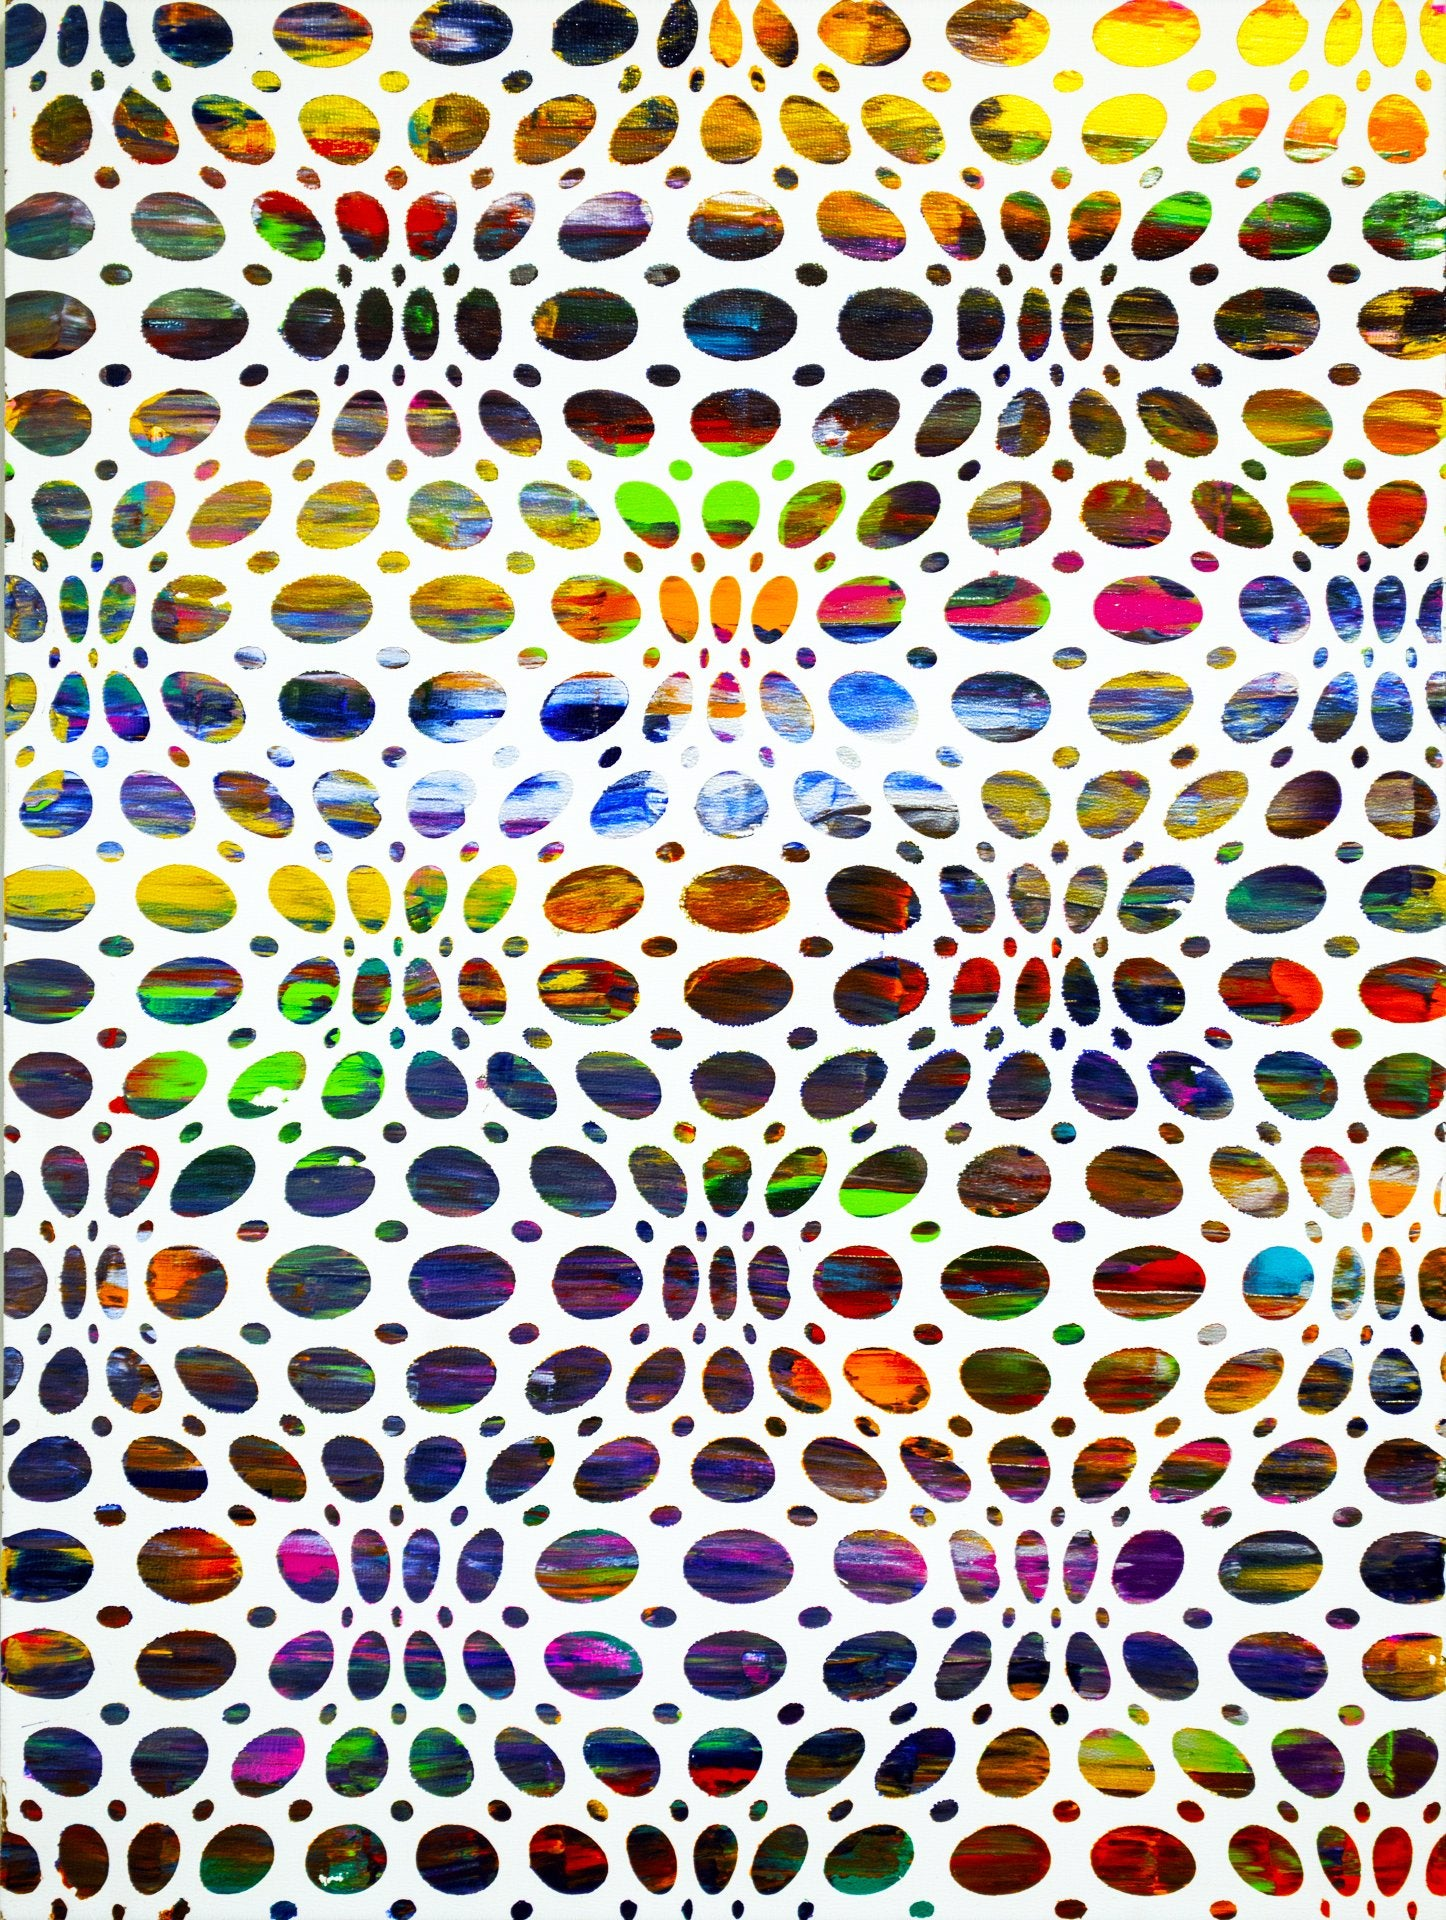 """Bead Curtain"" by Sean Christopher Ward"